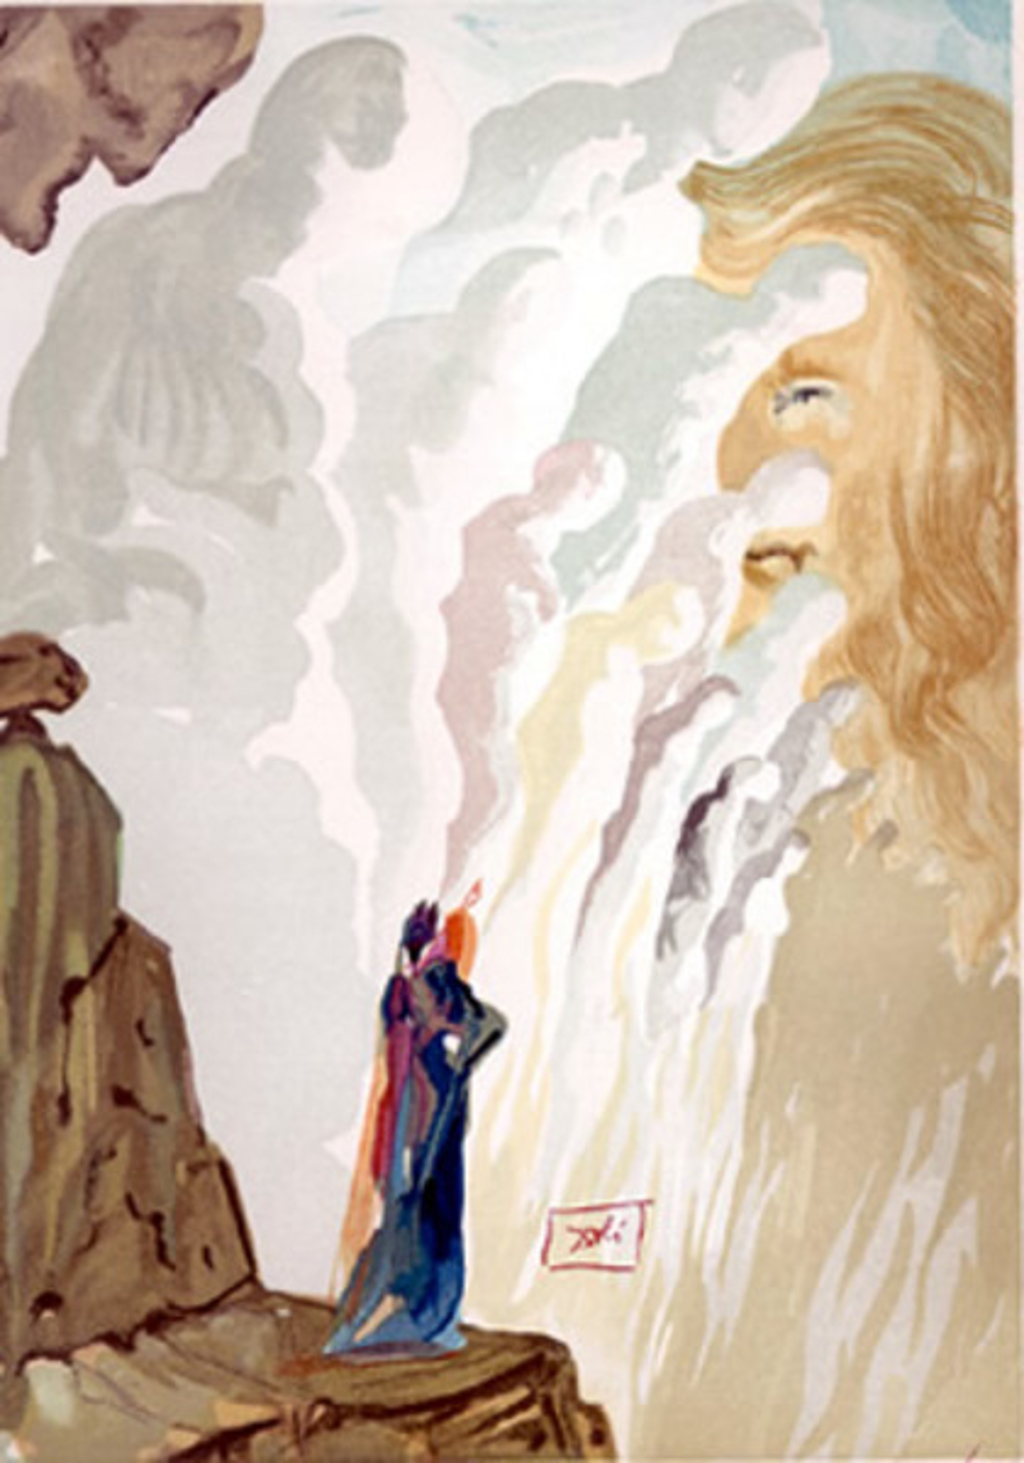 Purgatory Canto 12: The Beauty of the Sculptures from The Divine Comedy by Salvador Dali (1904 - 1989)